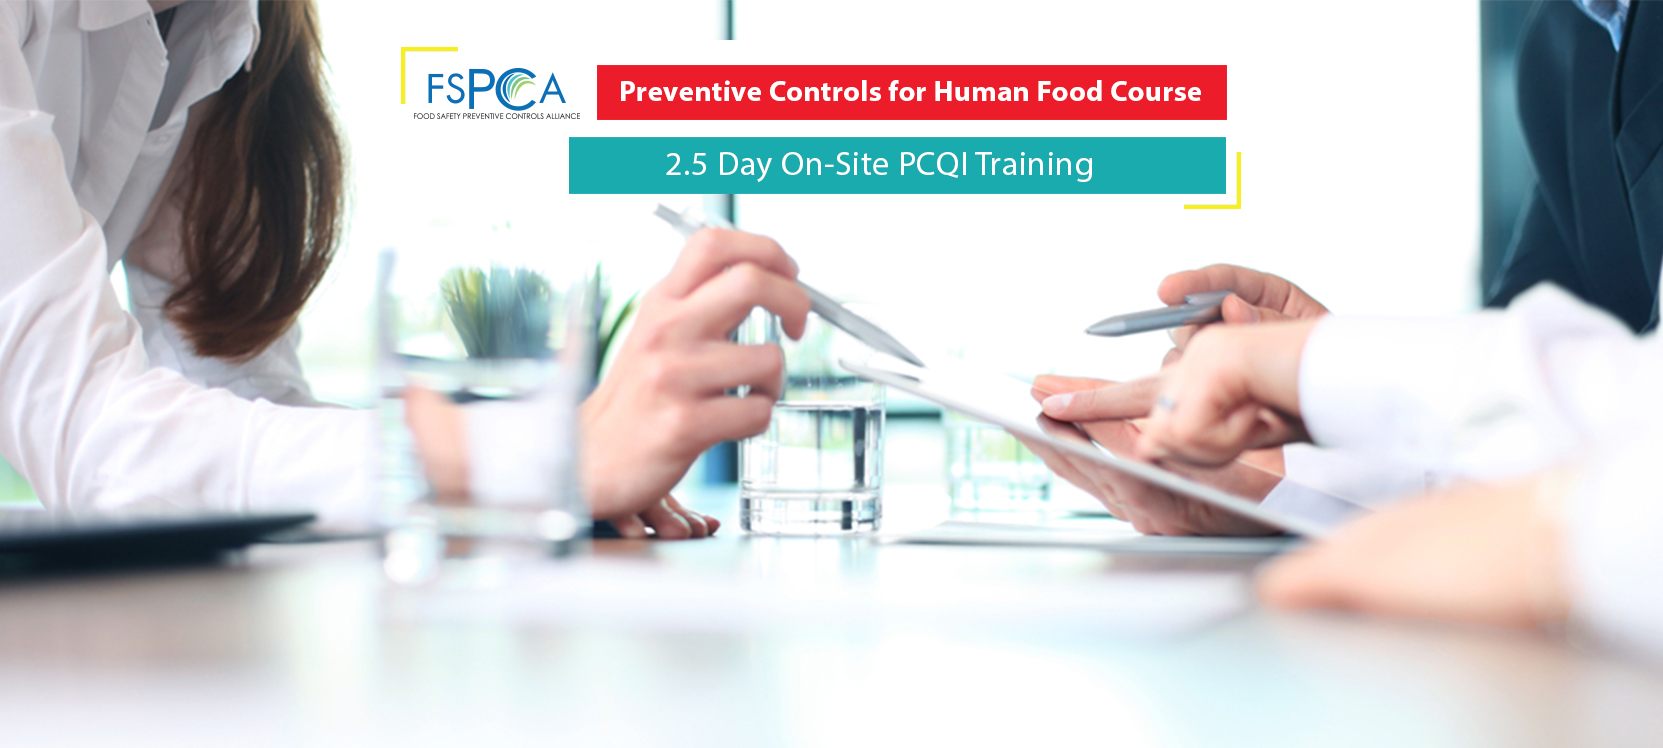 On-site PCQI Training